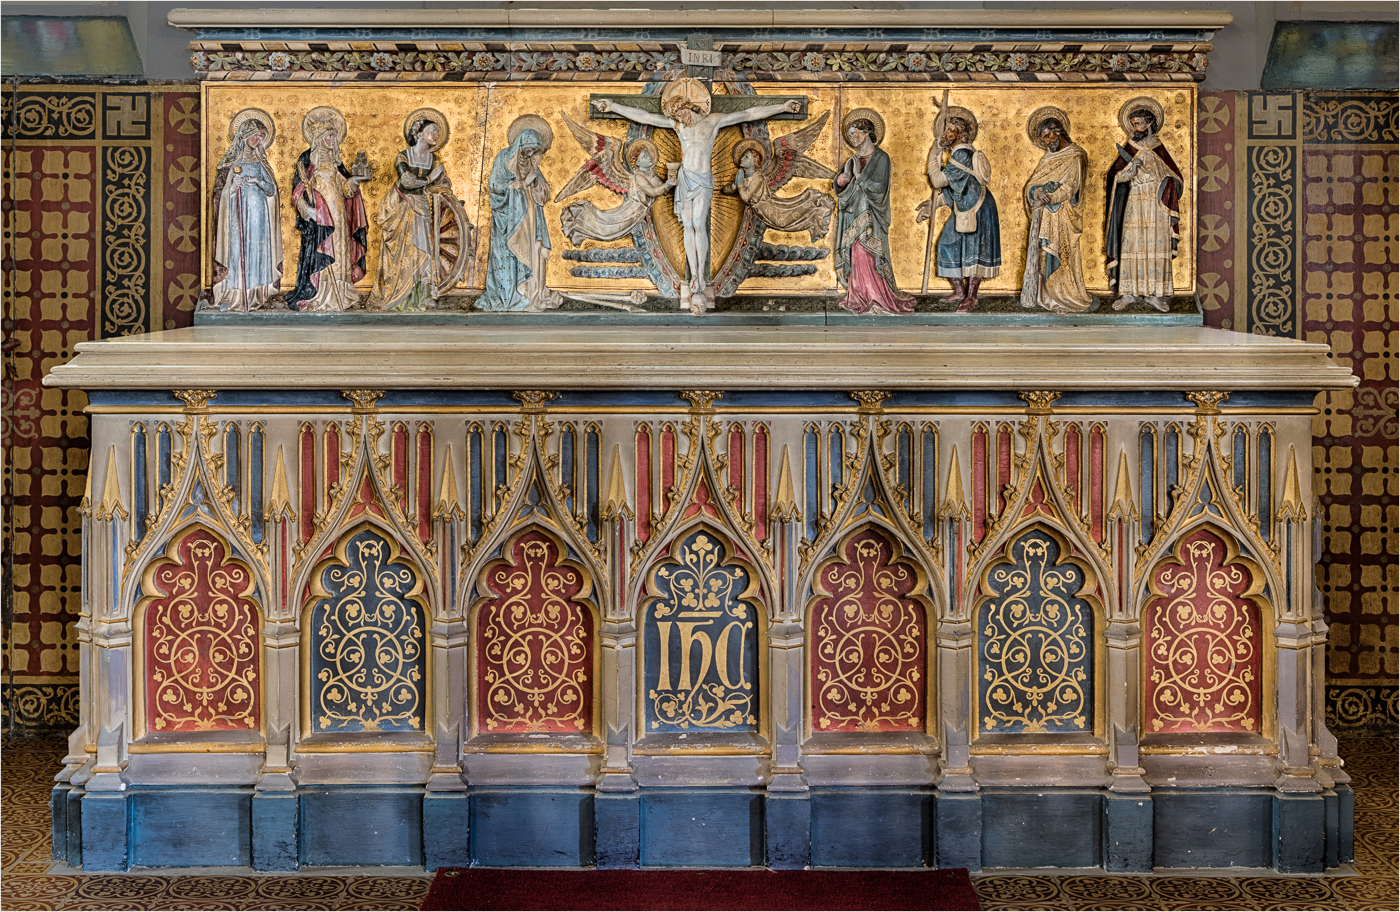 2nd Place - Christchurch, Kilndown; the decorated Altar by Clive Tanner MPAGB, FRPS, ARPS